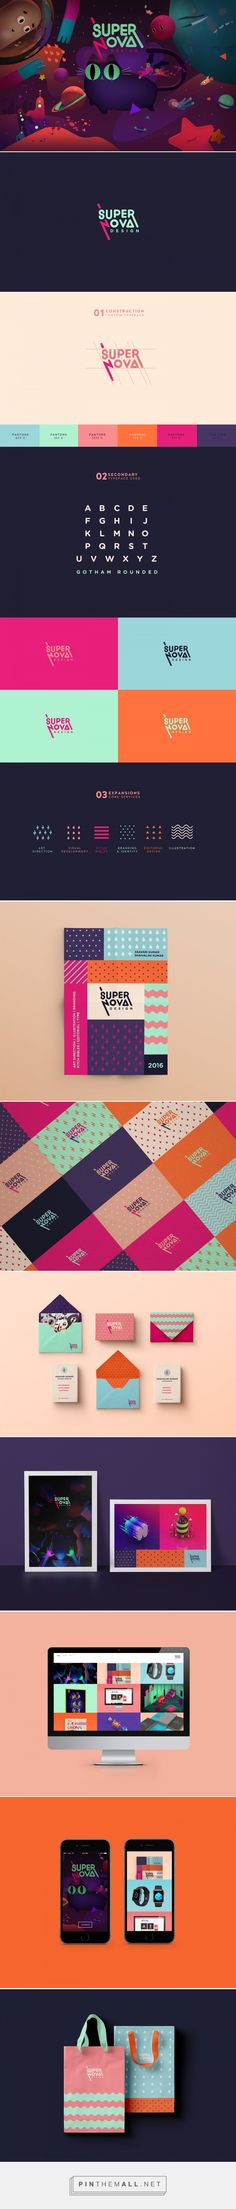 Supernova Design Branding on Behance | Fivestar Branding – Design and Branding Agency & Inspiration Gallery Más